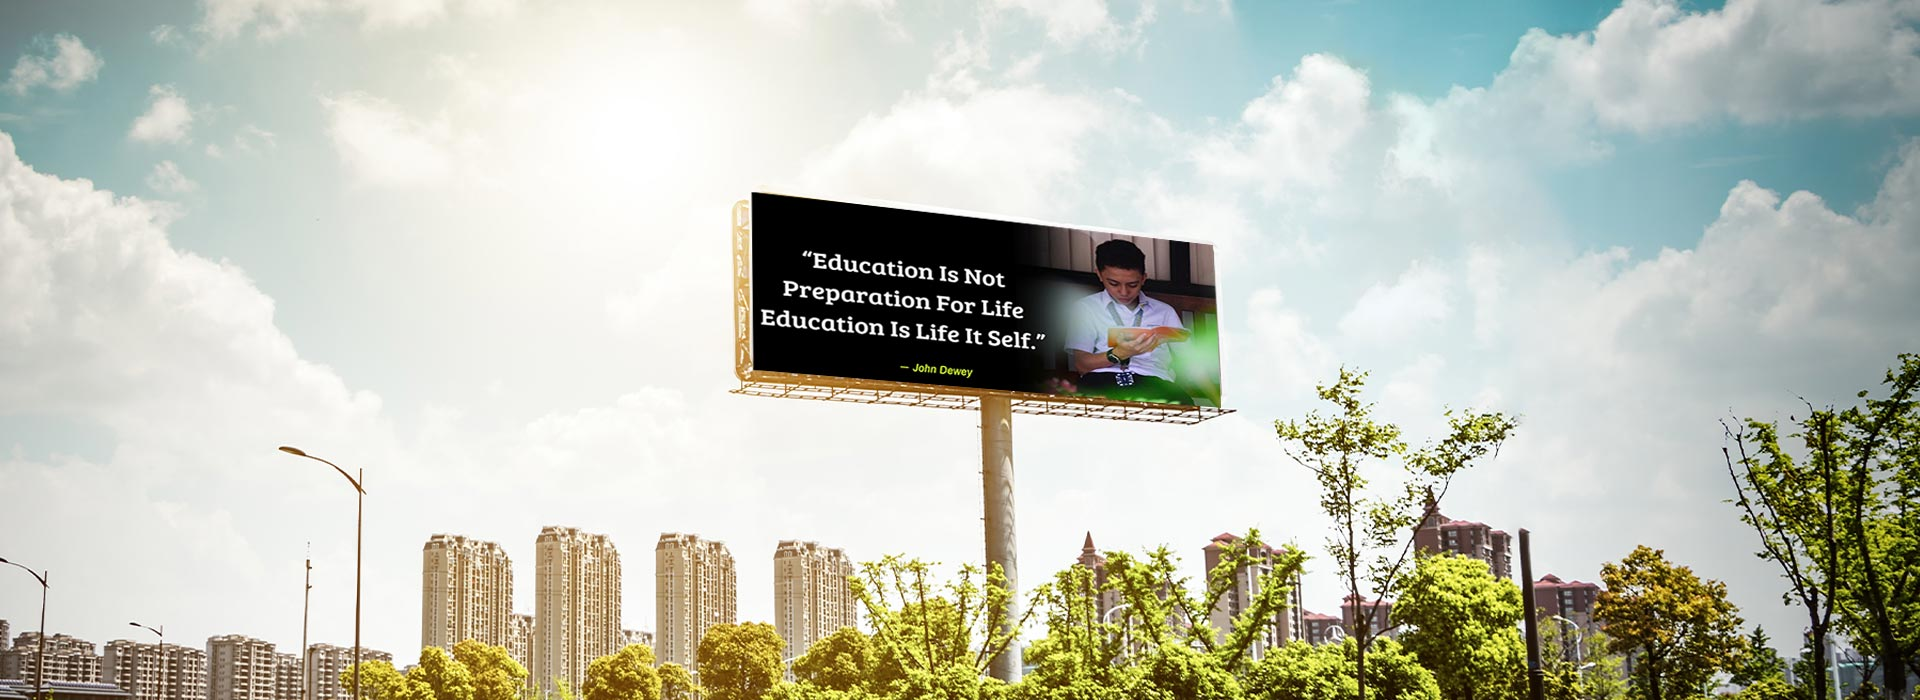 LED display for education